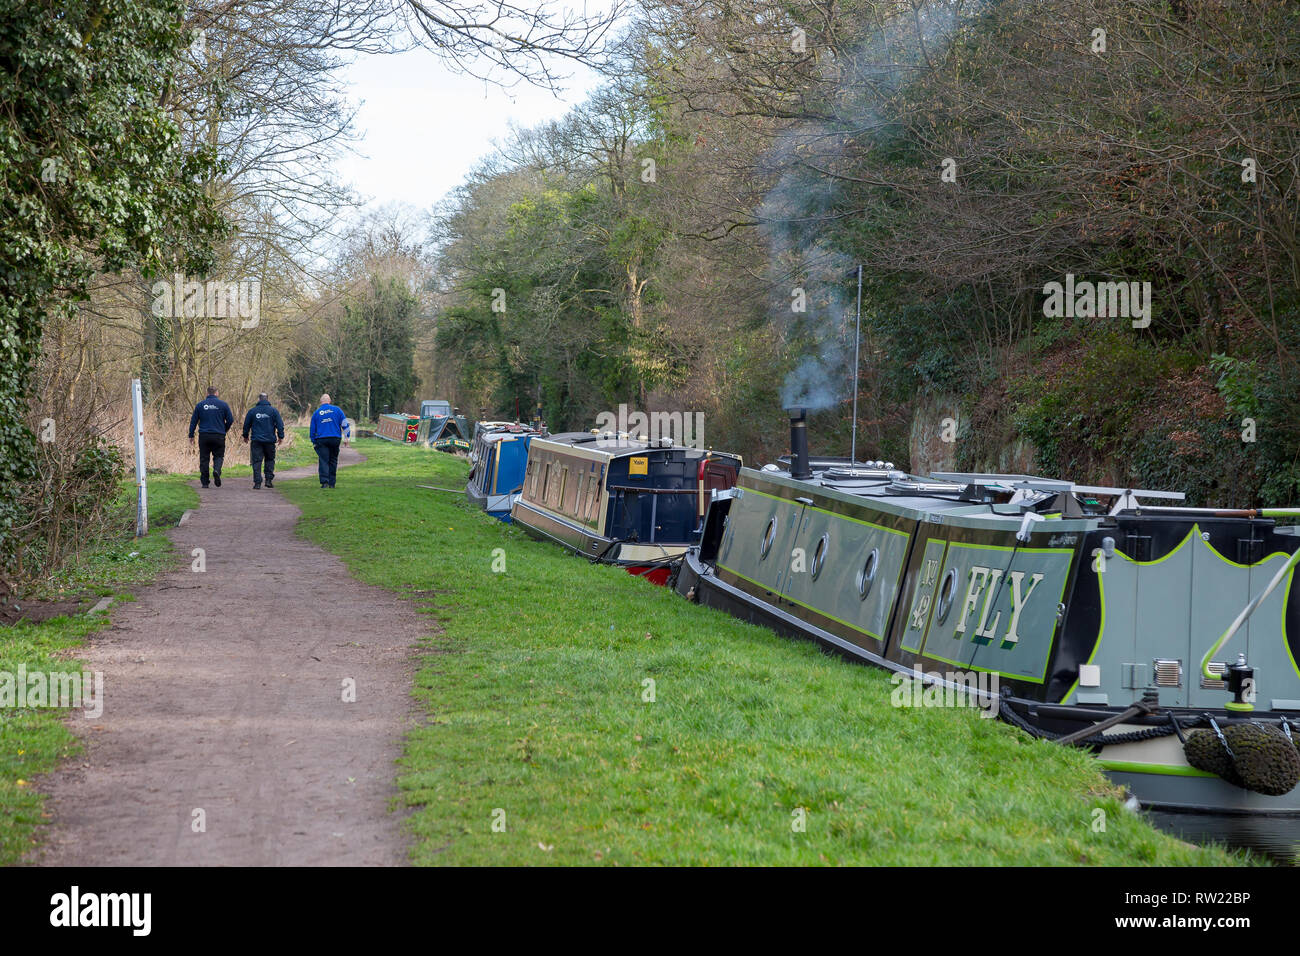 Kidderminster, UK. 4th March, 2019. after a landslip on the Staffordshire and Worcestershire Canal this weekend in Kidderminster, canal boats moor-up, most of their occupants on holiday hoping to travel the canal, patiently waiting for the Canal and River Trust to remove a mass of earth and debris from the water. Currently the canal is impassable, but Canal Trust workers are already working to remove the debris. Credit: Lee Hudson/Alamy Live News Stock Photo